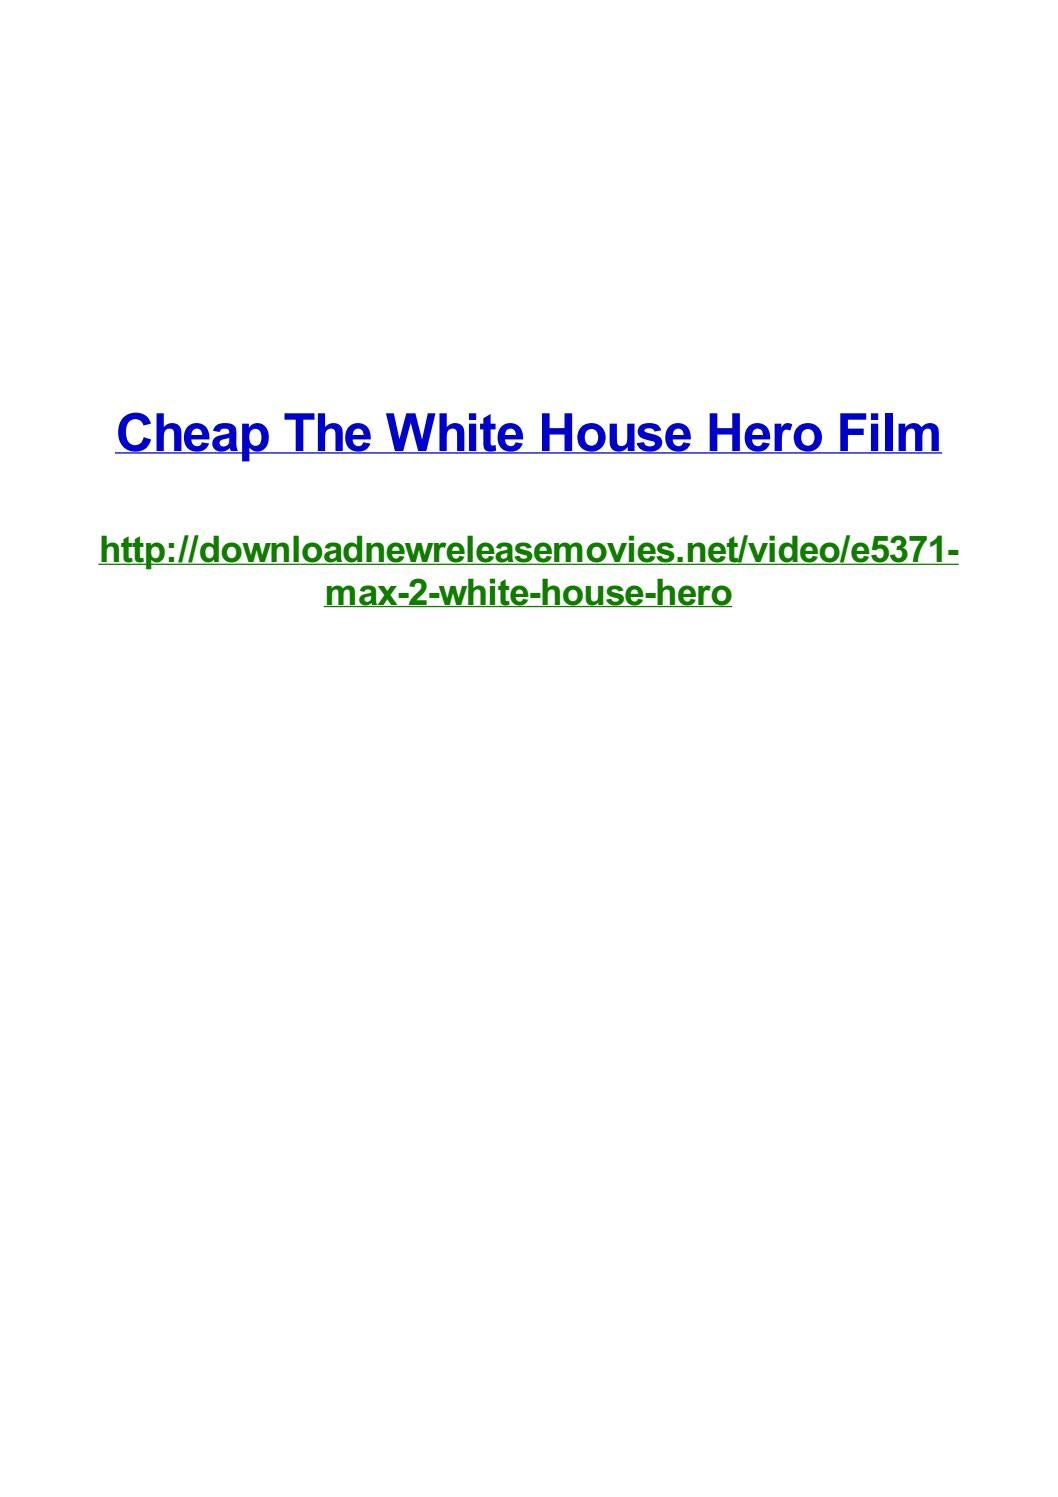 Cheap the white house hero film by Frank Seamons - issuu